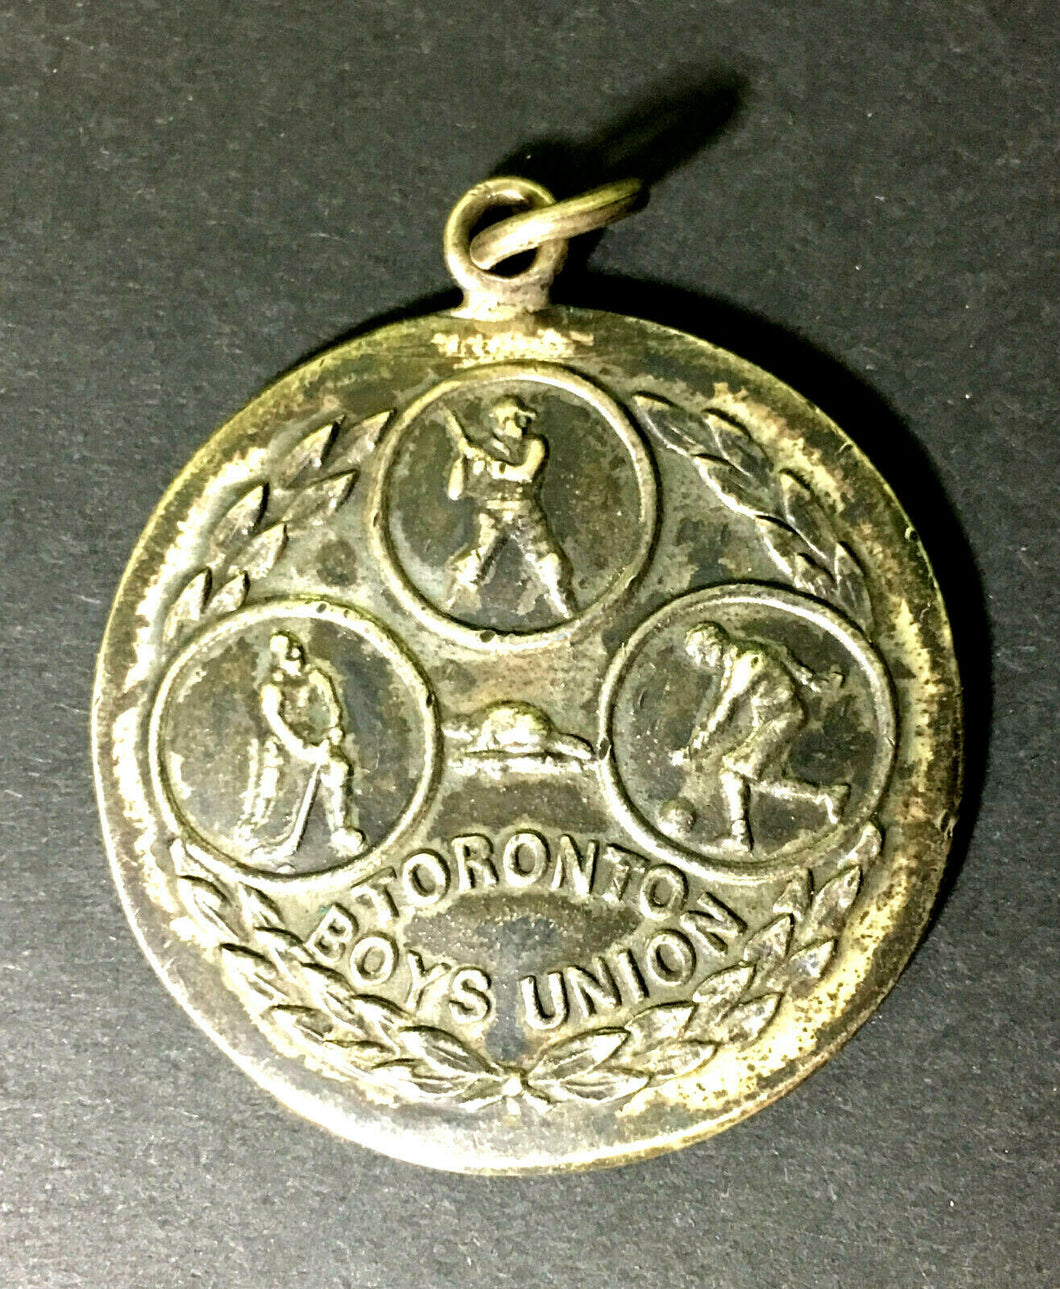 1914 Toronto Boys Union Sterling Medal Best All Round Baseball Football Hockey